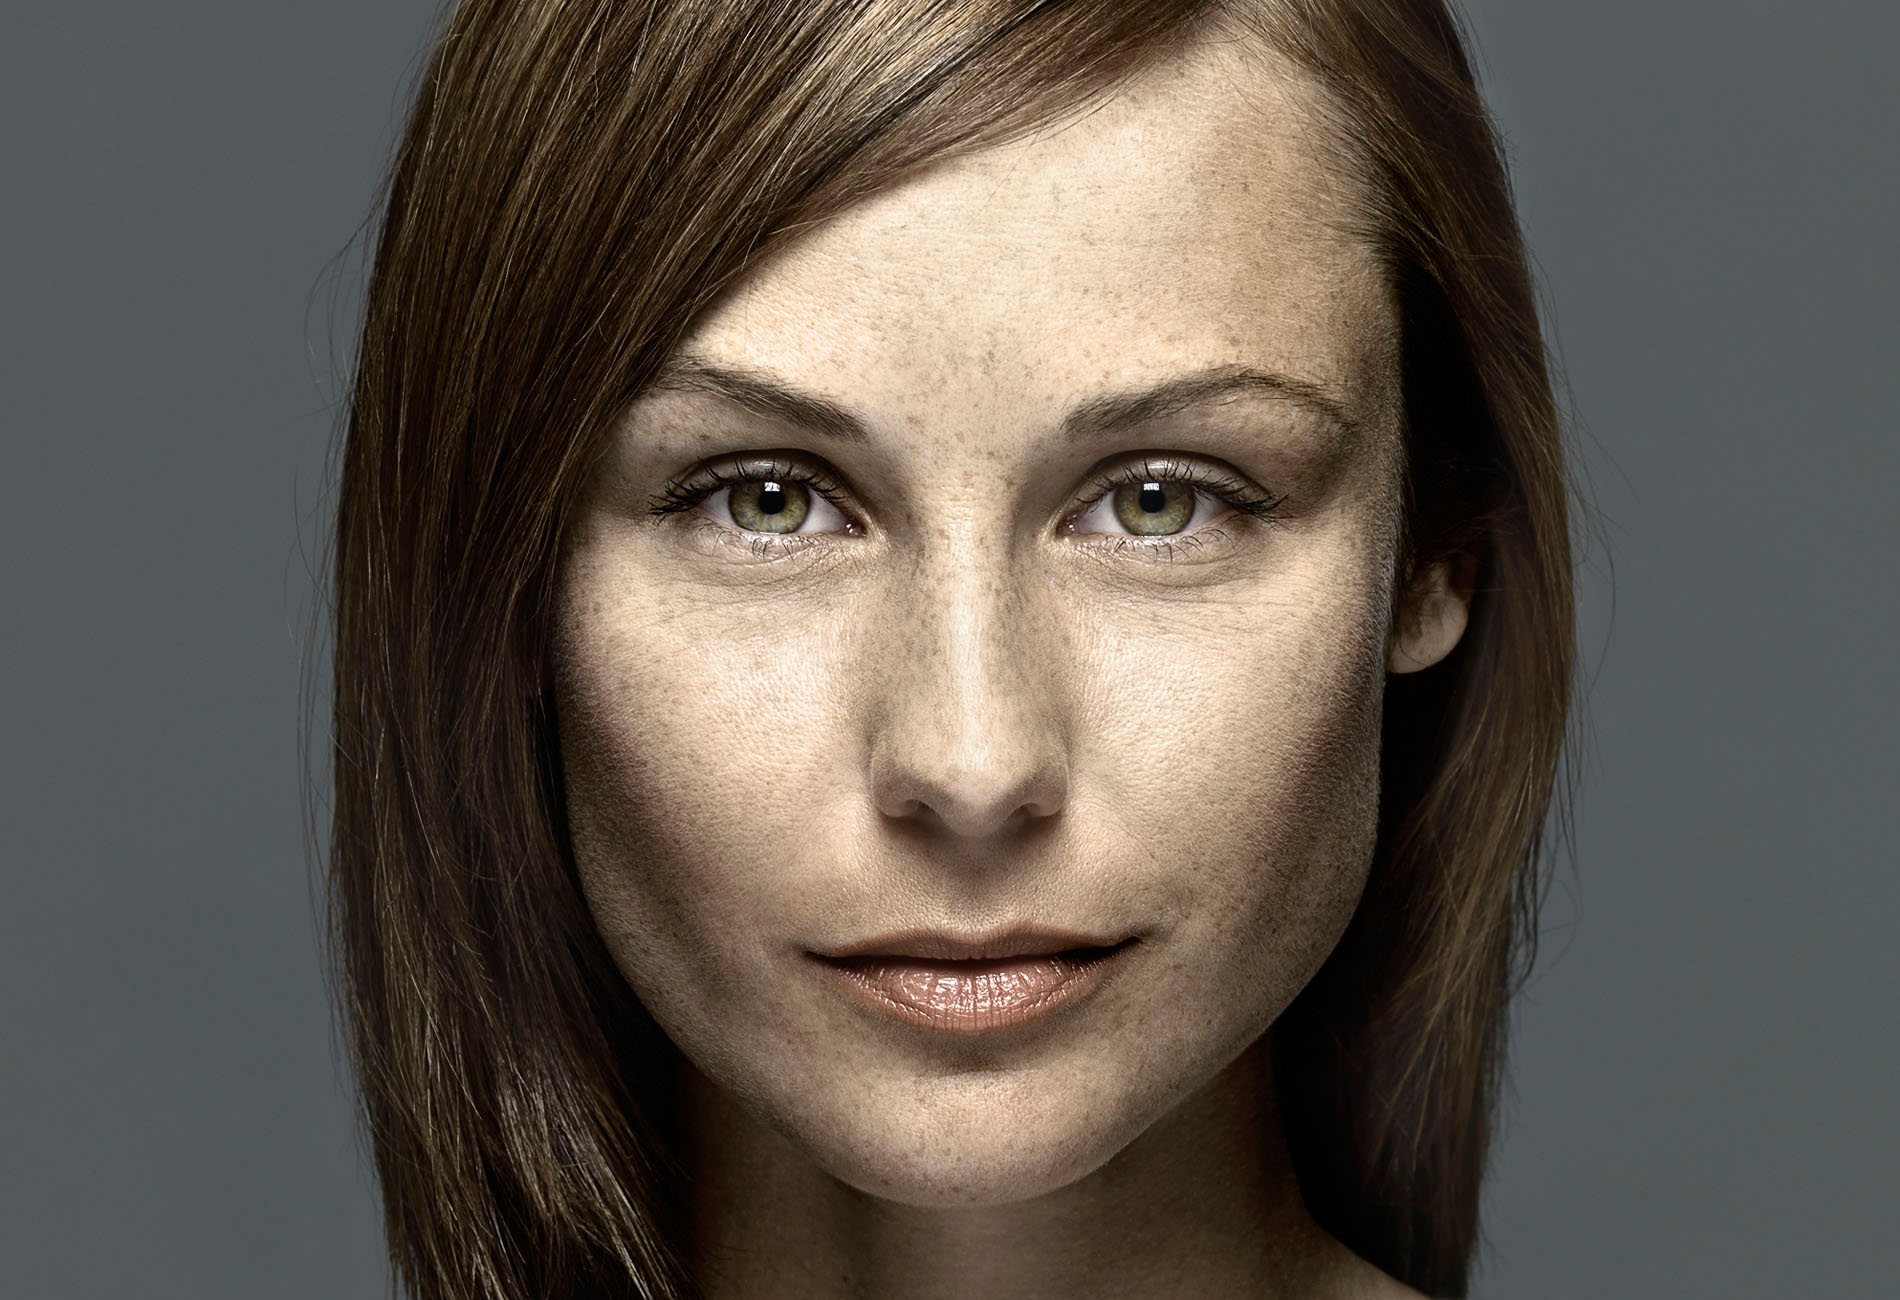 Portraitretusche is a people retouching project by Schalterhalle post production and Tobias Winkler Imaging.